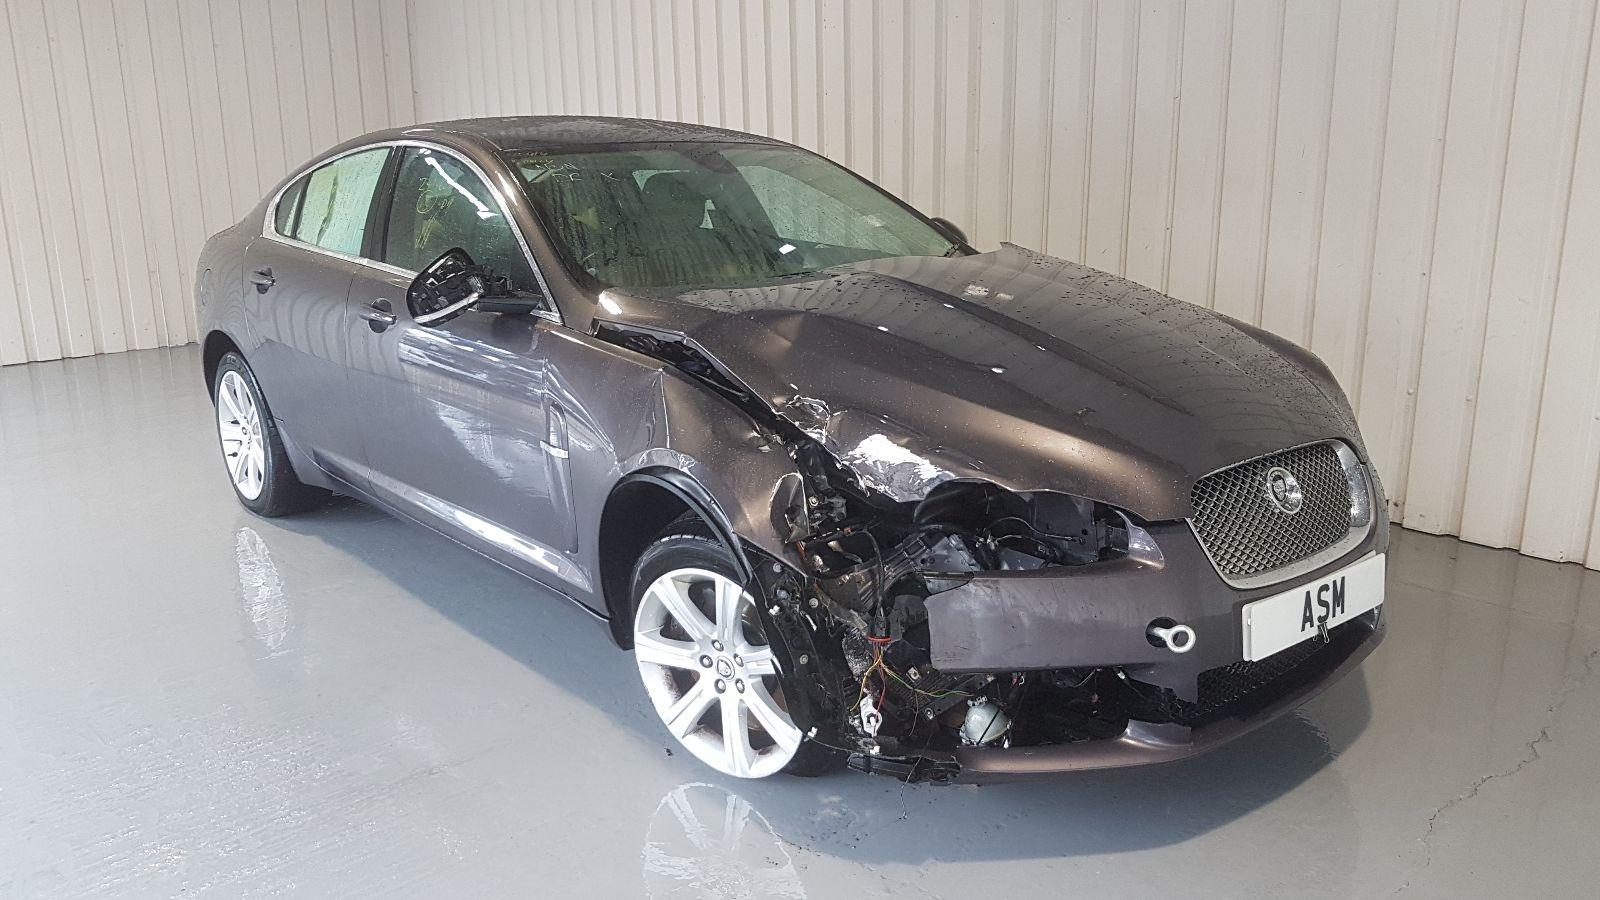 Image for a Jaguar Xf 2009 4 Door Saloon